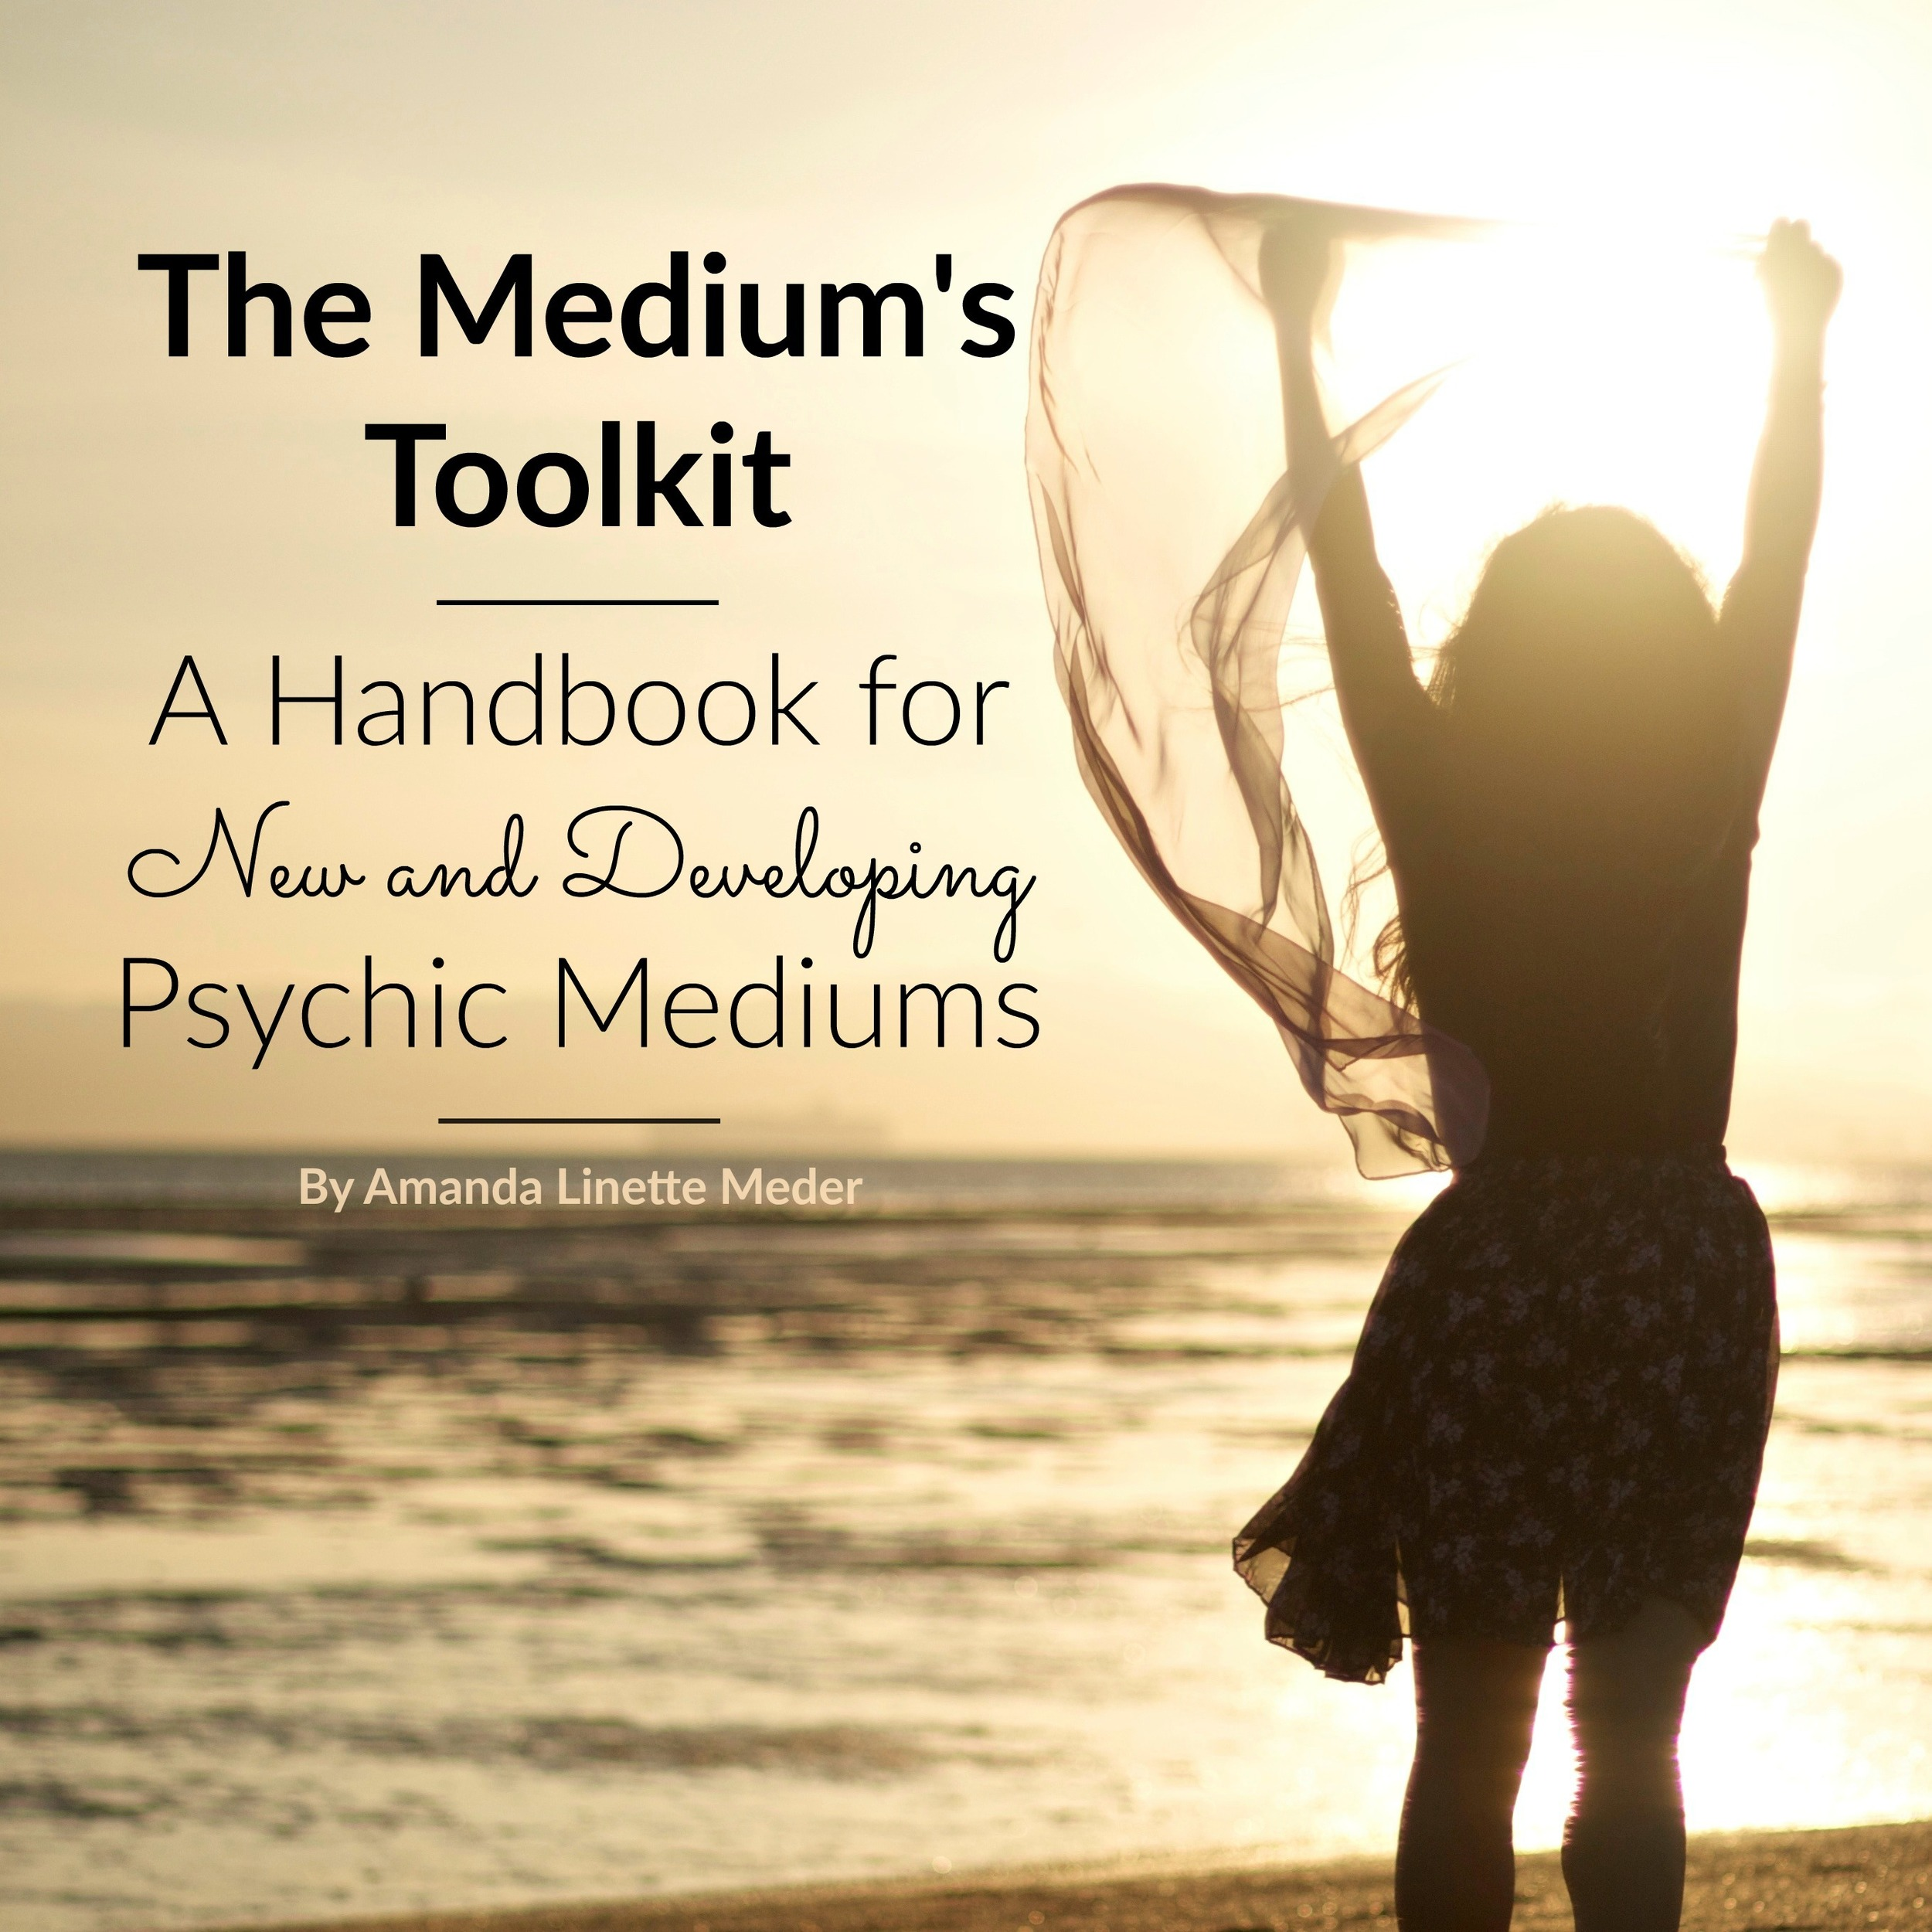 Psychic Mediums, check this out! This is a handbook and guide for mediums to develop their intuition, open their psychic gifts and understand how careers works -